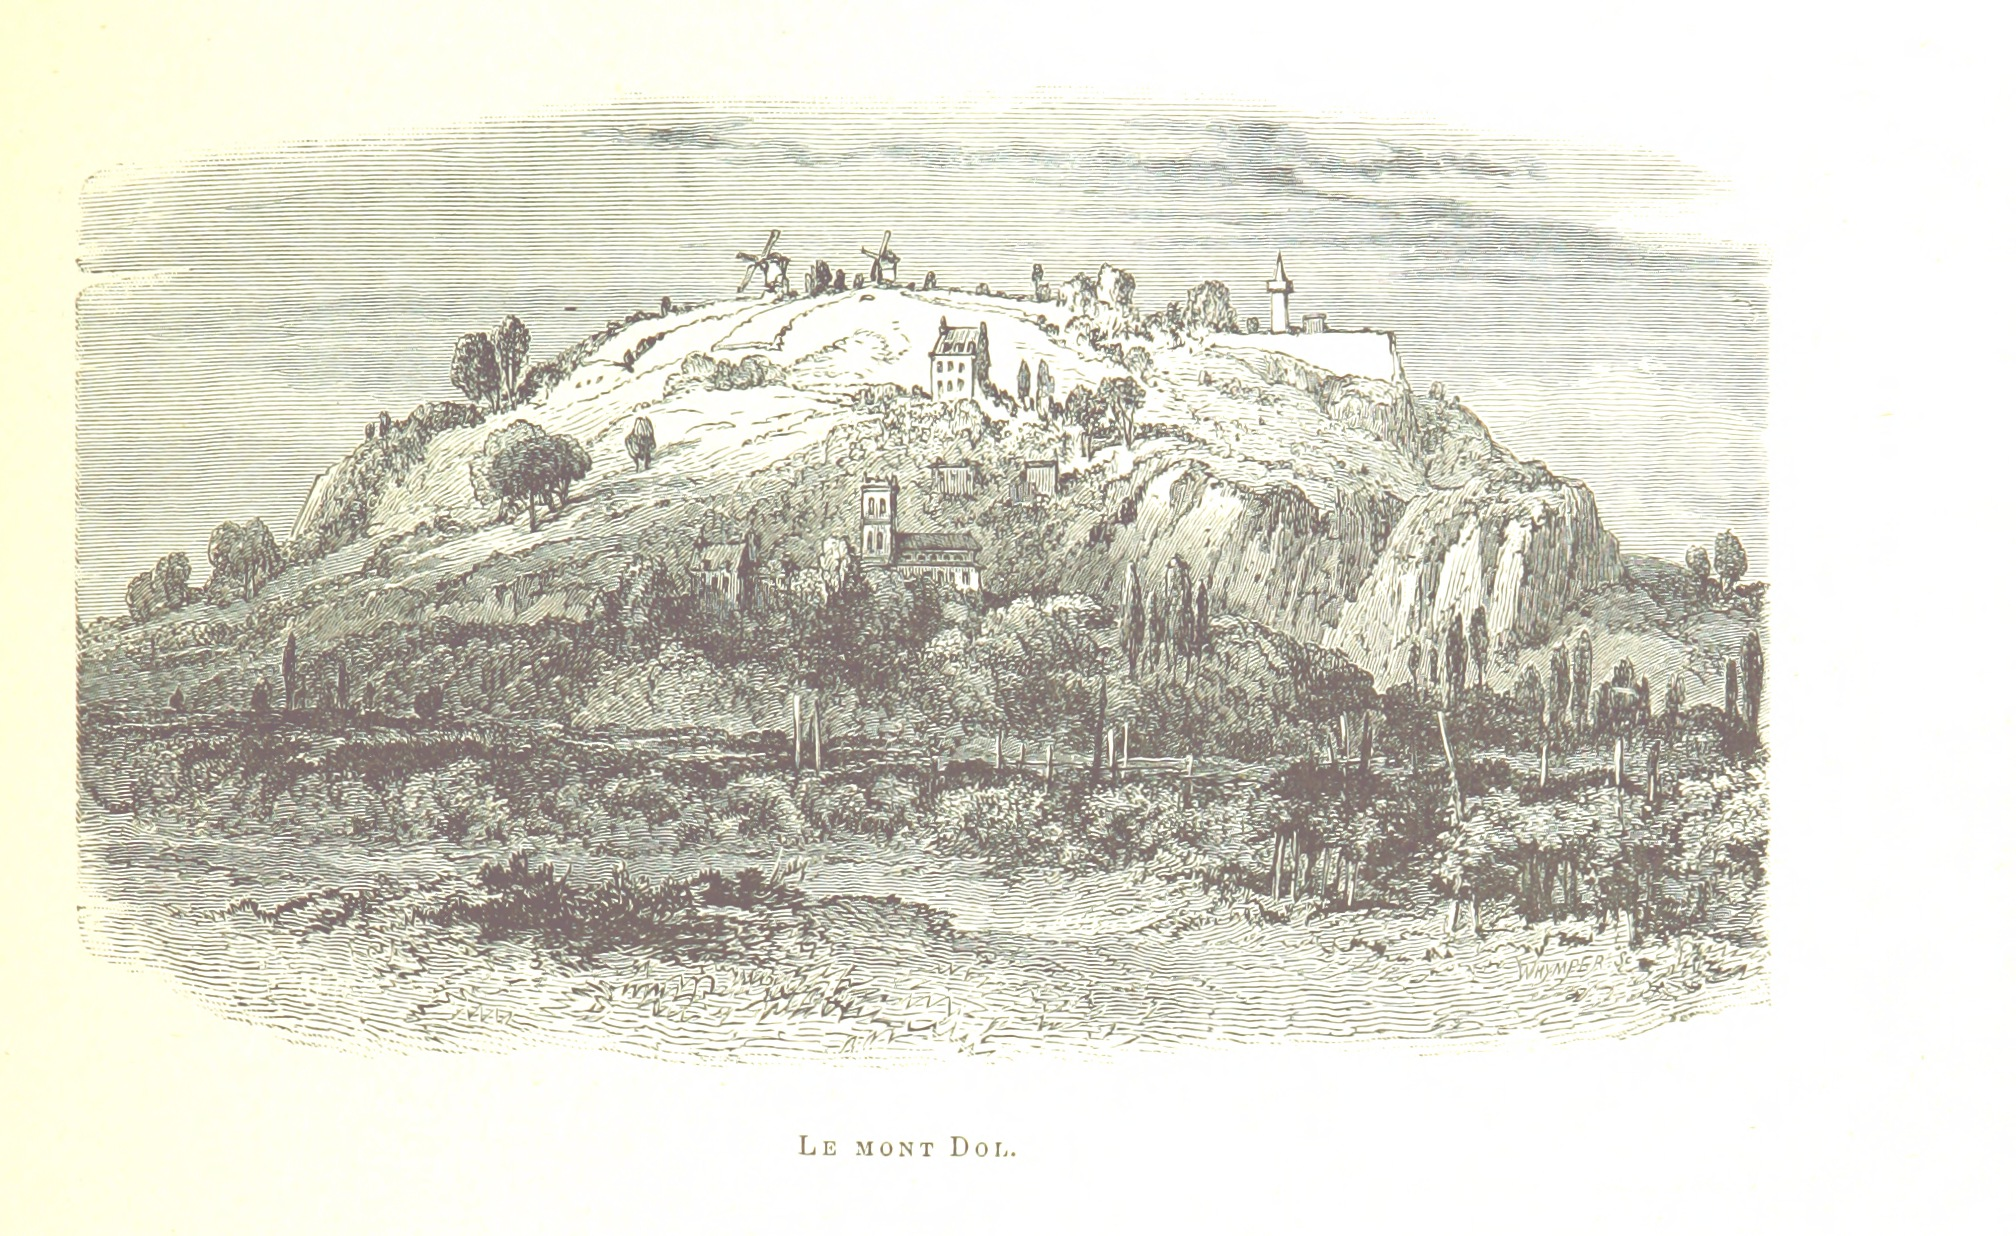 Illustration du mont Dol prise de La France pittoresque. Ouvrage illustré, etc